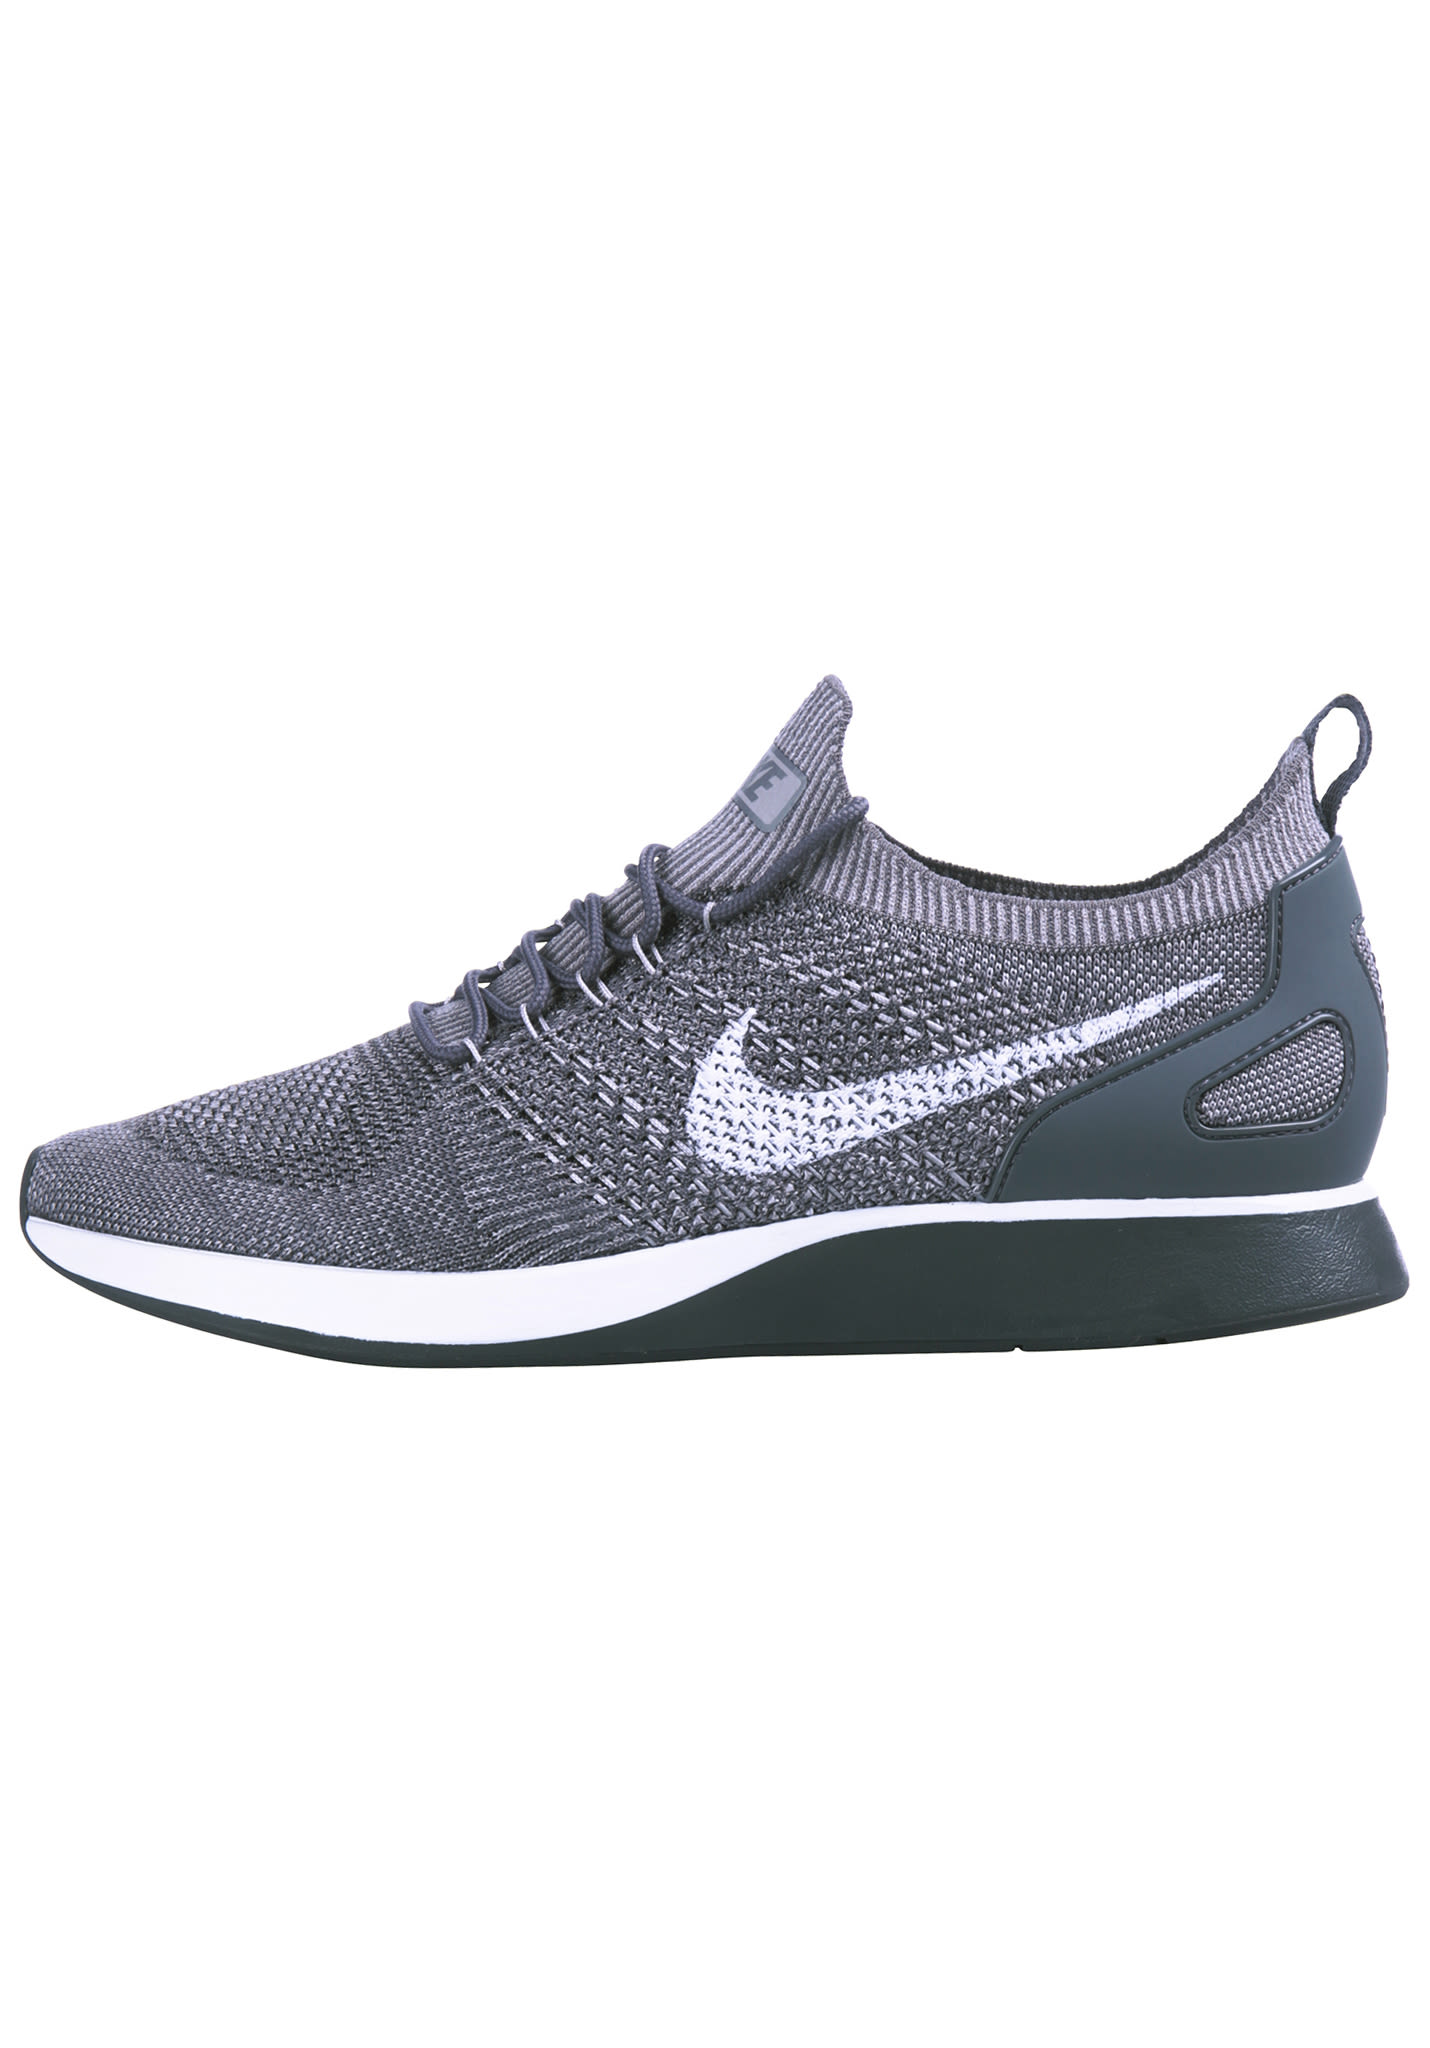 superior quality 26efc 9eb6a NIKE SPORTSWEAR Air Zoom Mariah Flyknit Racer - Zapatillas para Hombres -  Gris - Planet Sports